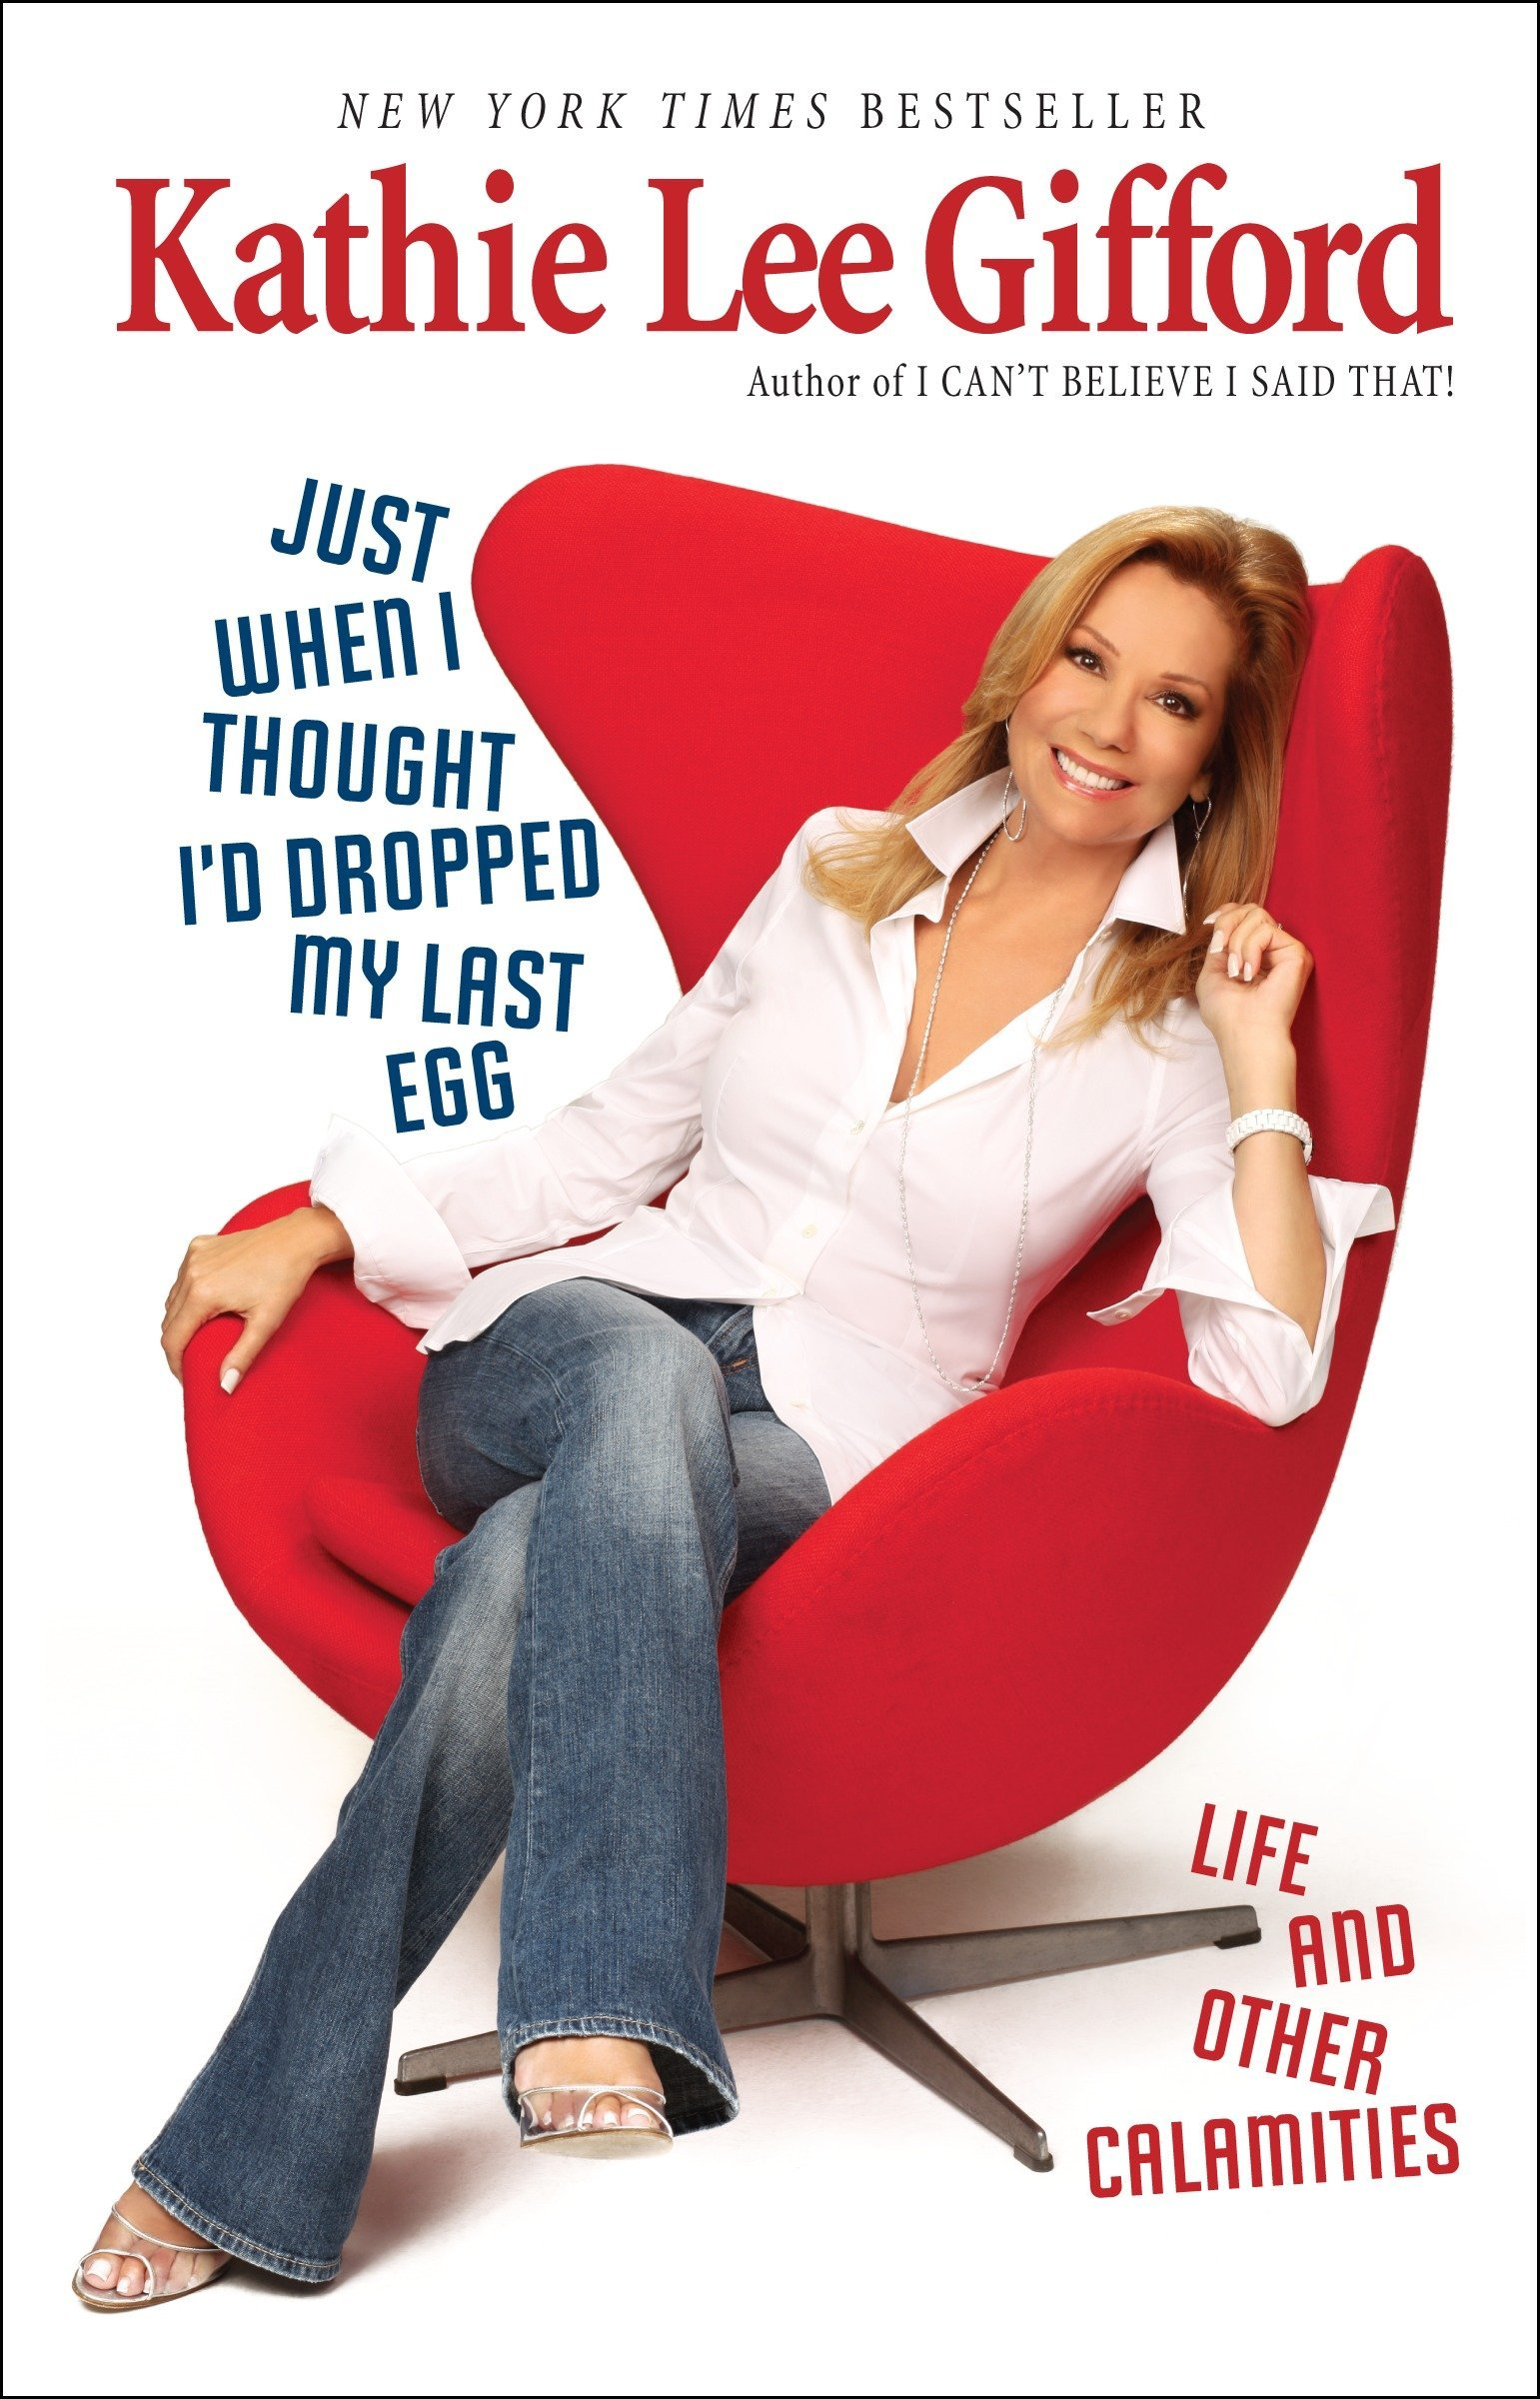 Kathy Lee Gifford: A Short Biography